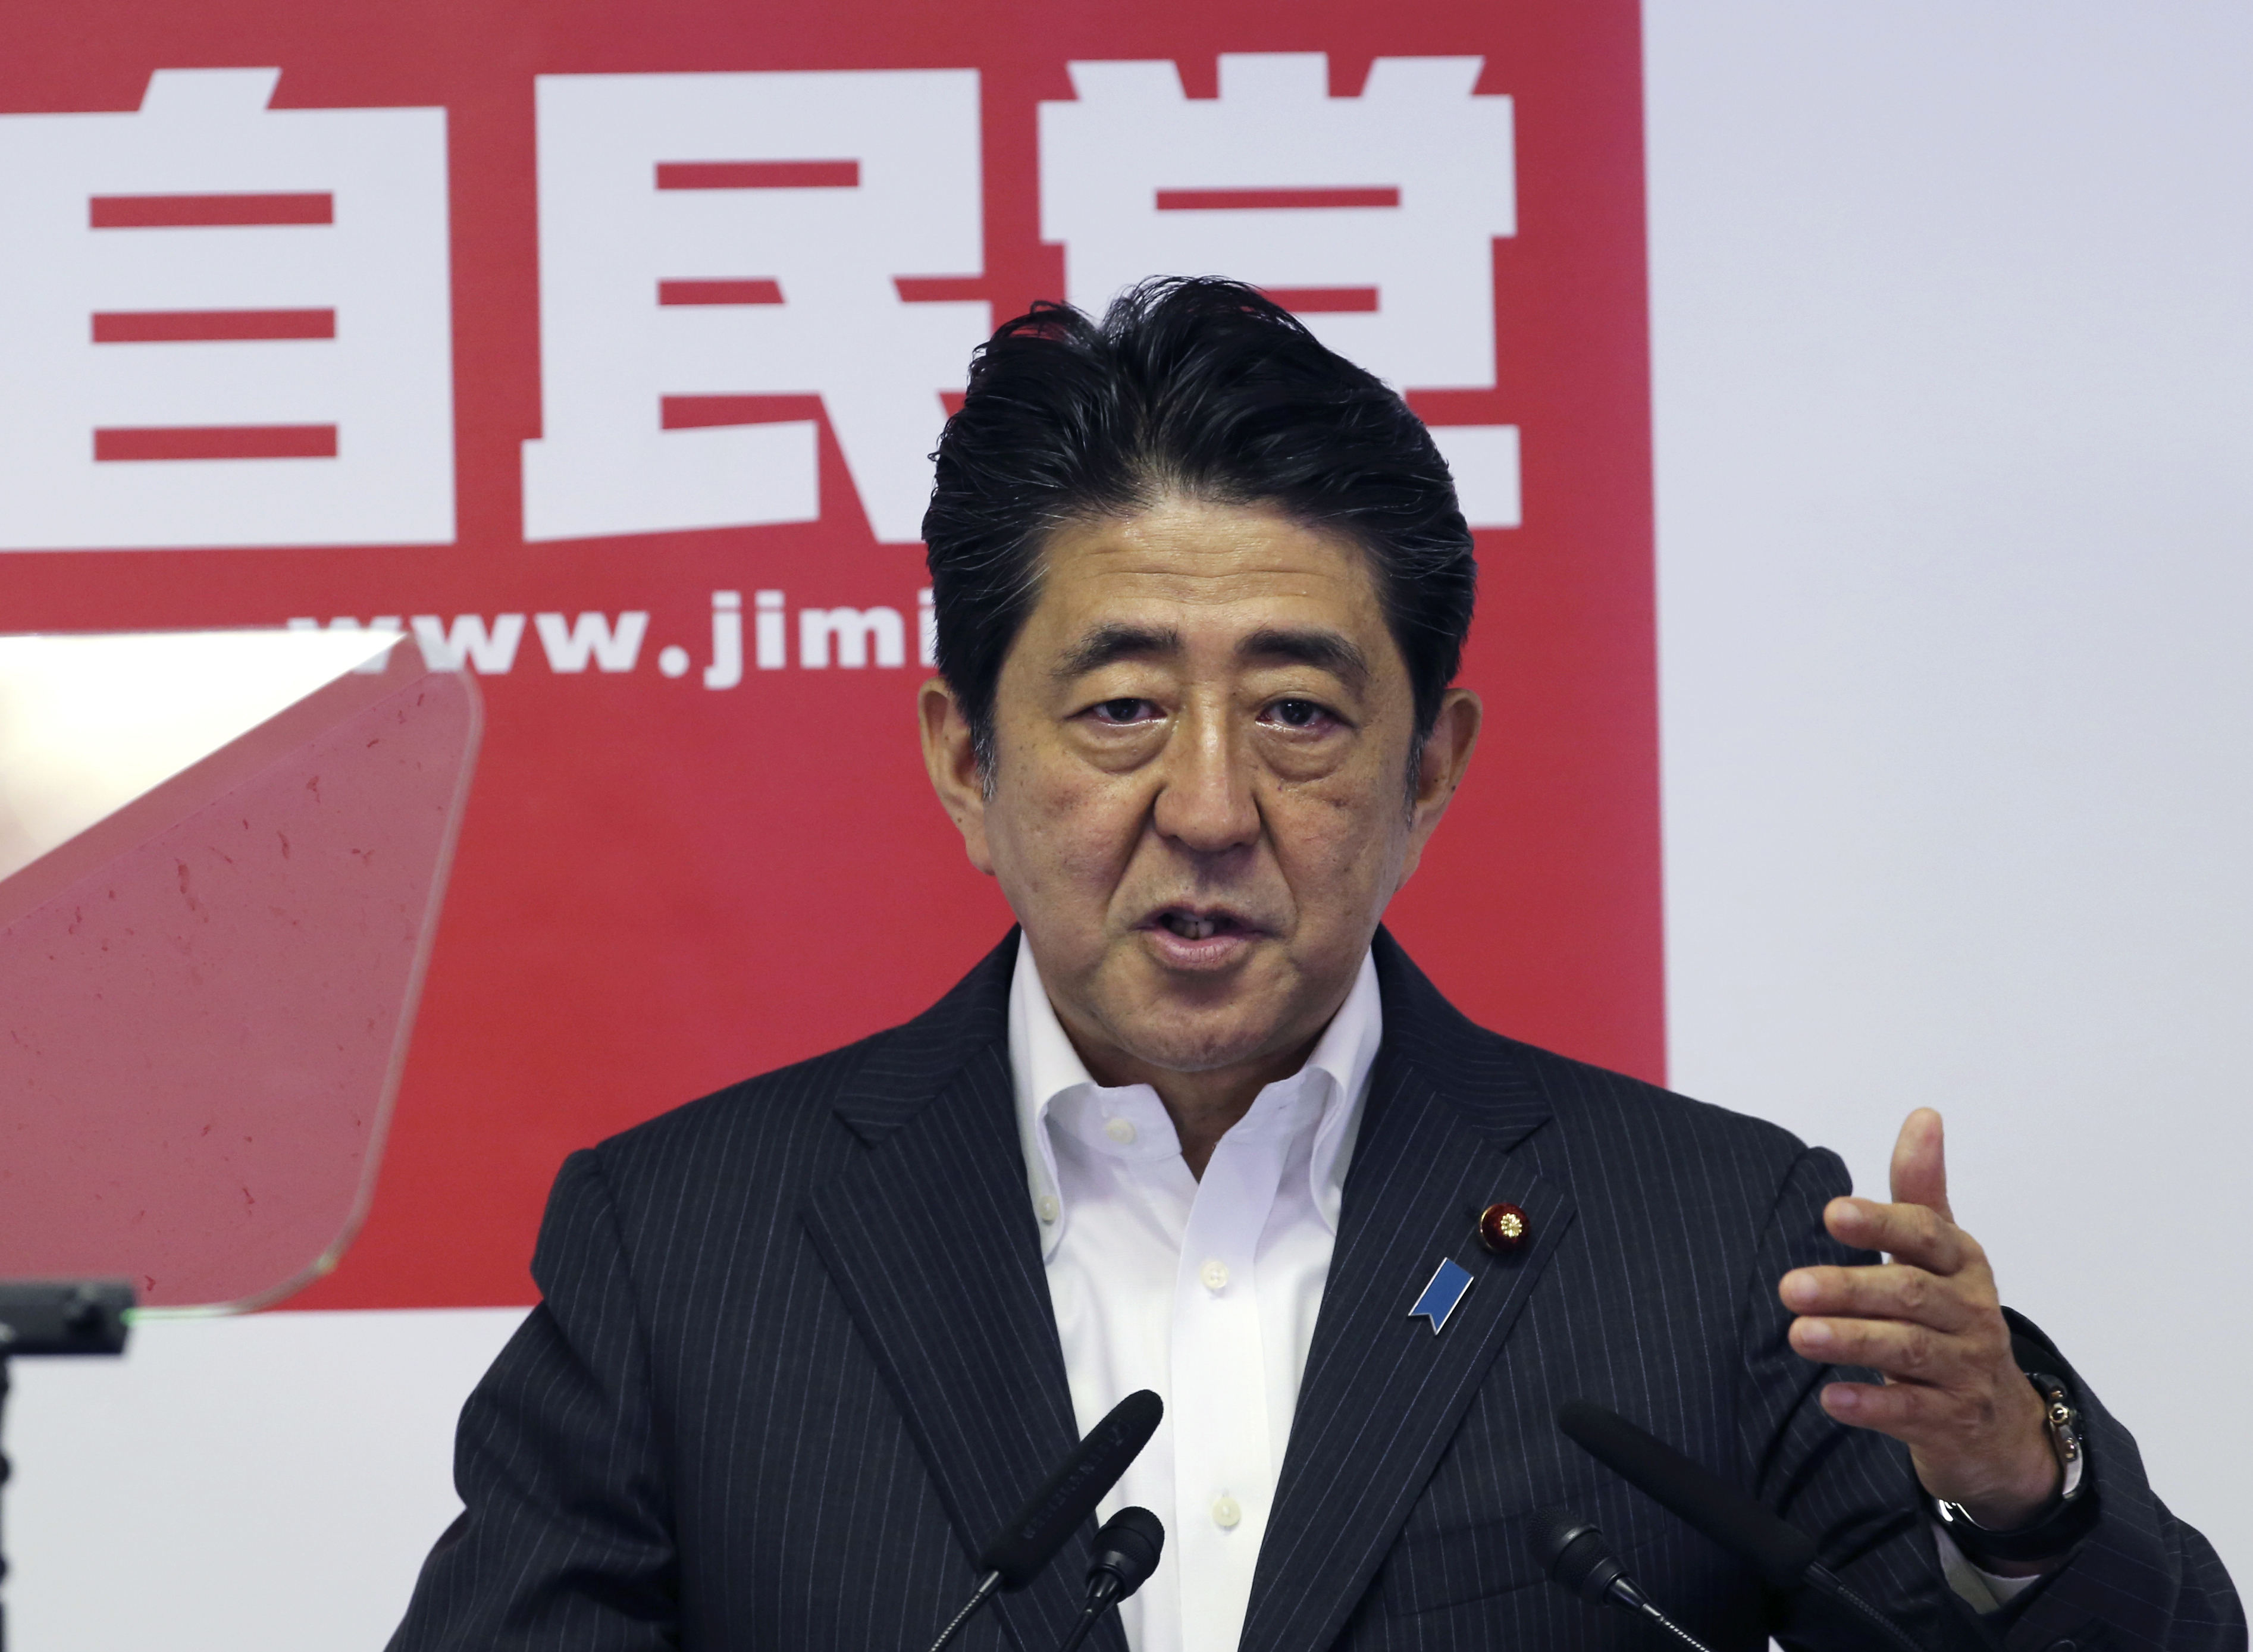 Japanese Prime Minister and leader of the ruling Liberal Democratic Party, Shinzo Abe, speaks during a press conference in Tokyo on July 11, 2016.